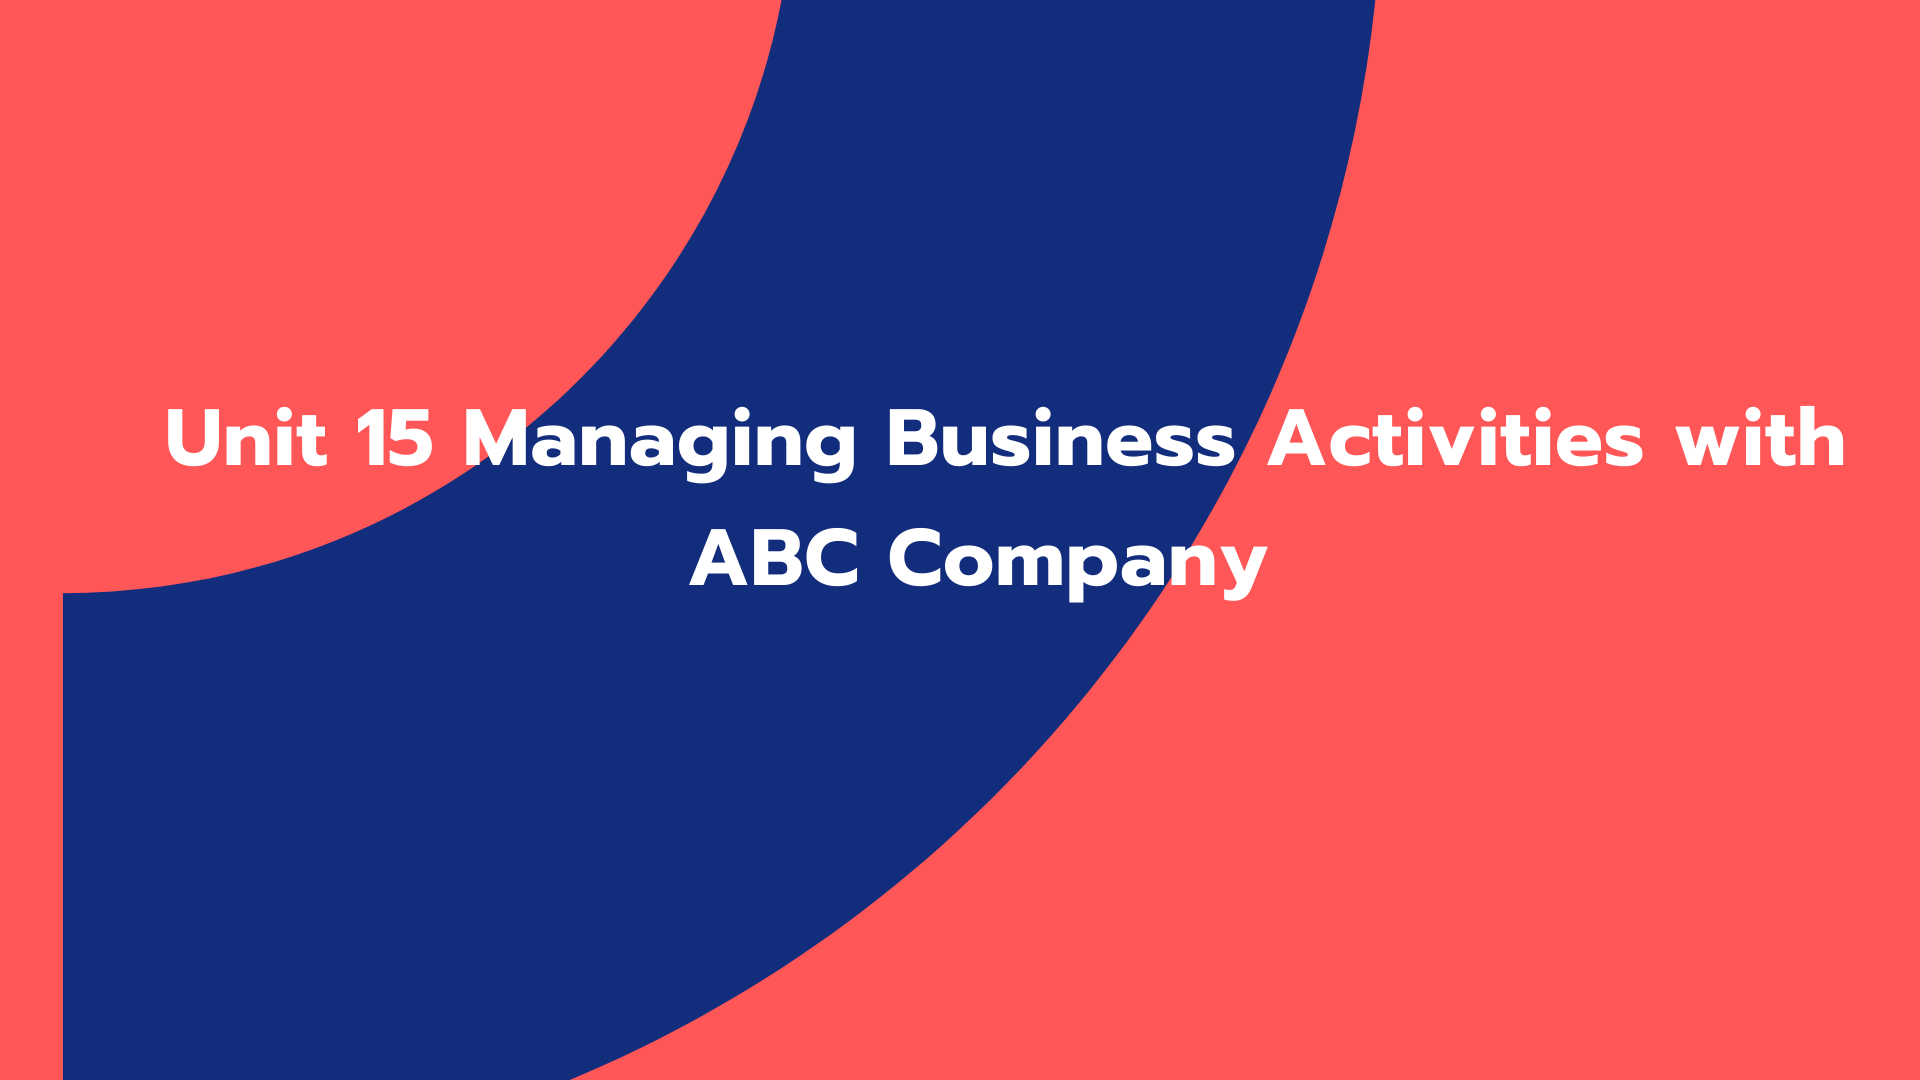 Unit 15 Managing Business Activities with ABC Company